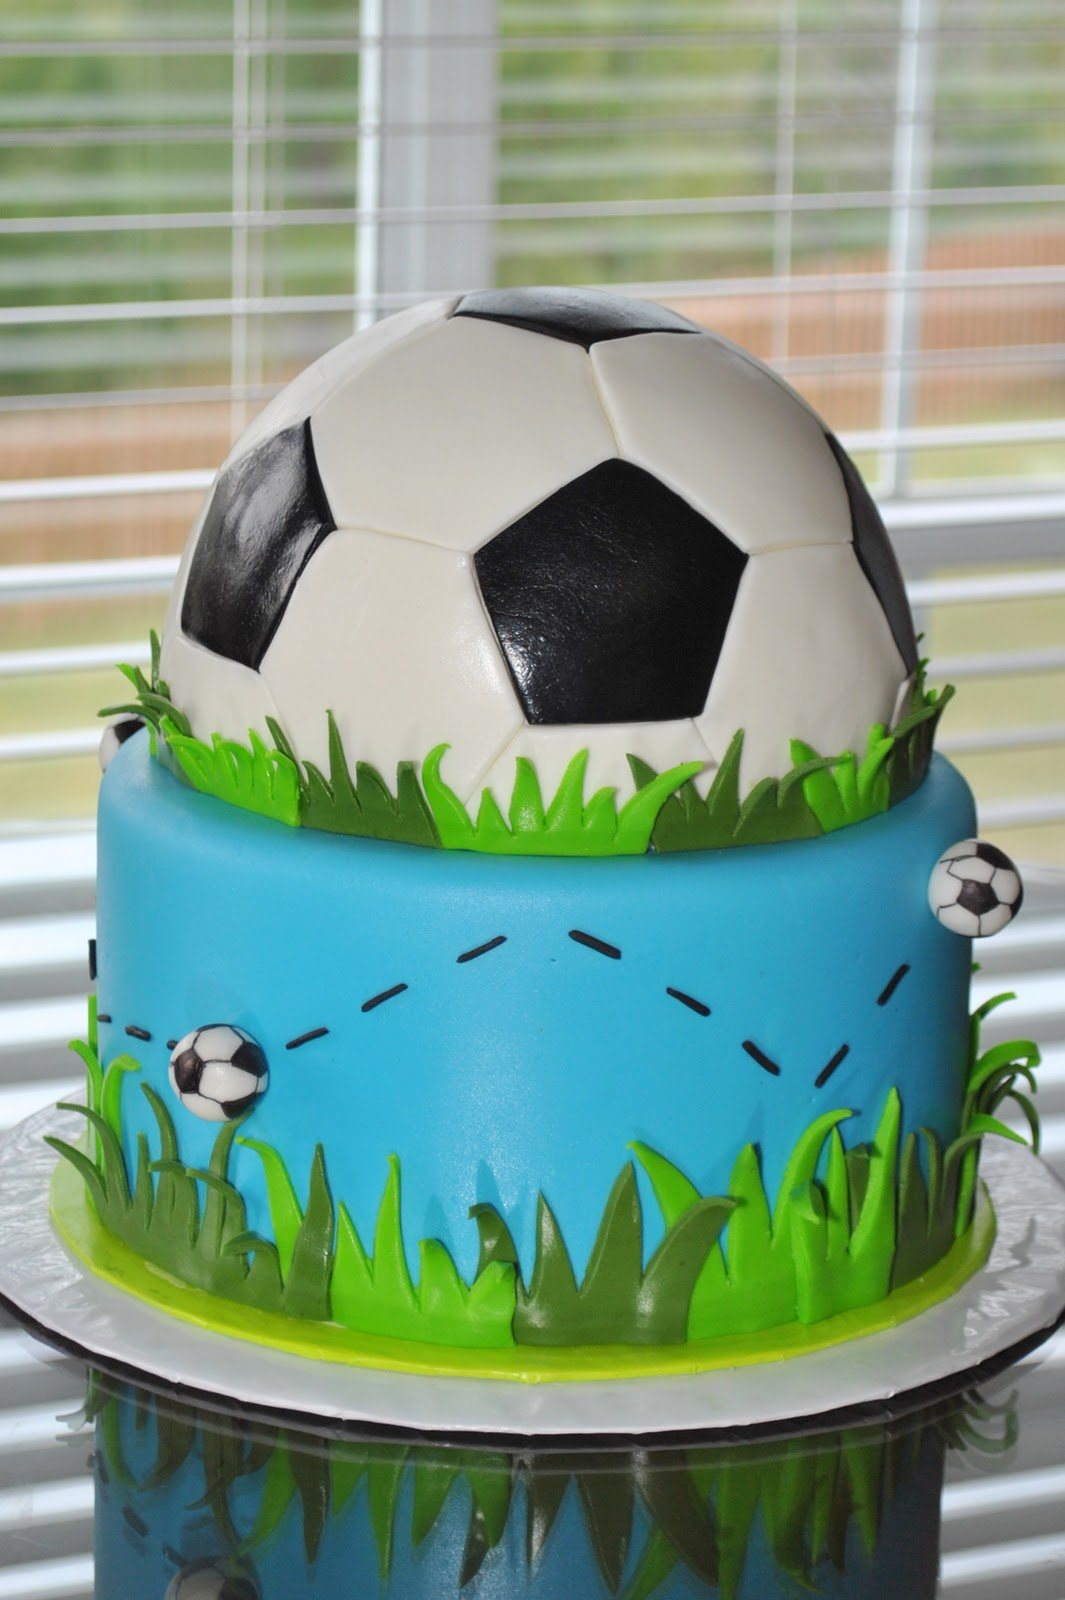 Images Of Soccer Cake : Hope s Sweet Cakes: Have a Ball...Soccer That Is!